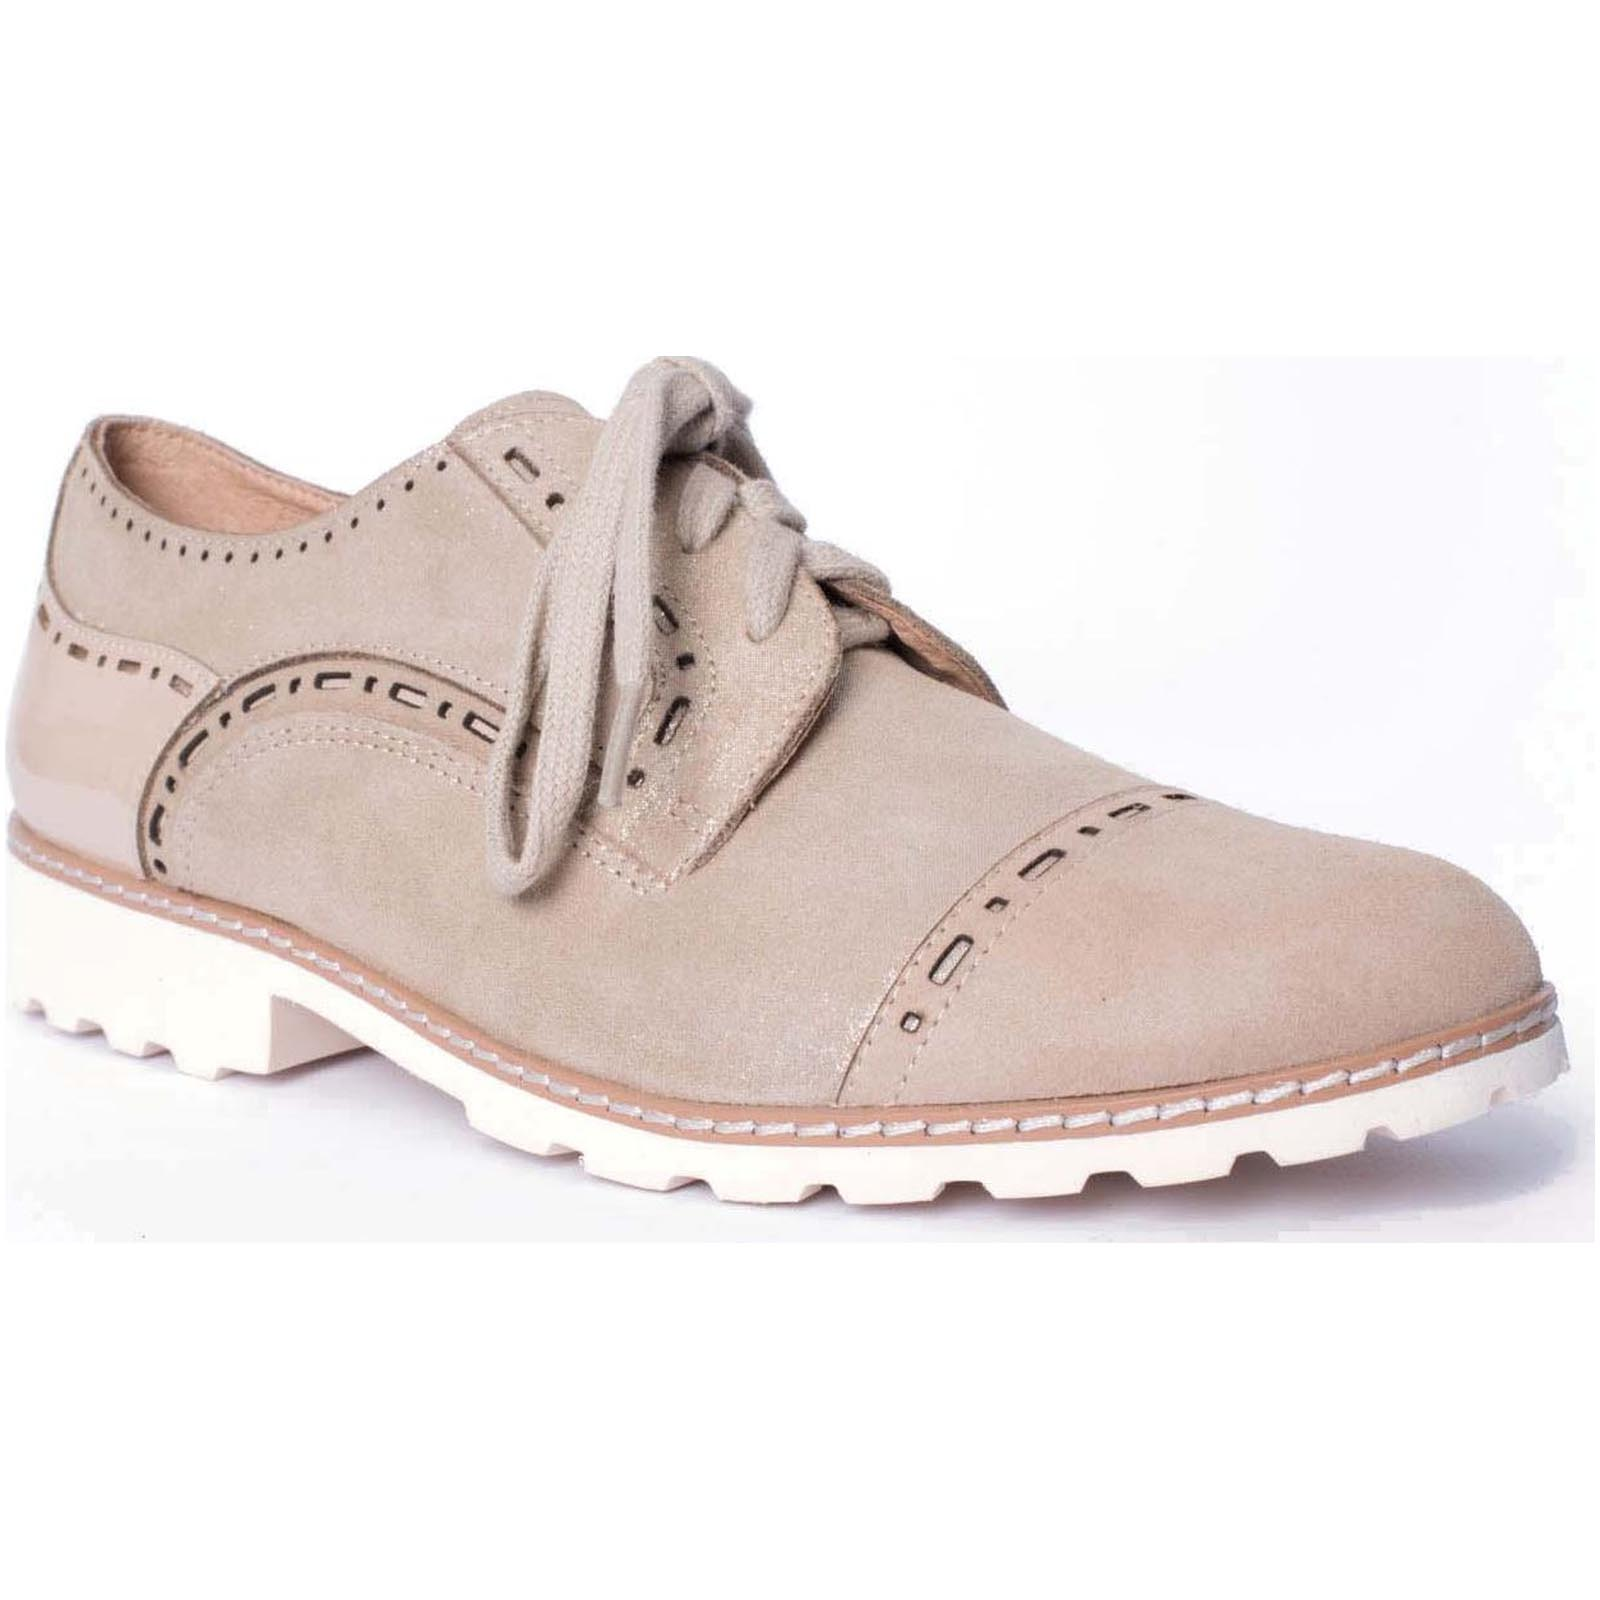 Fugitive chaussures ville lacets willer marron